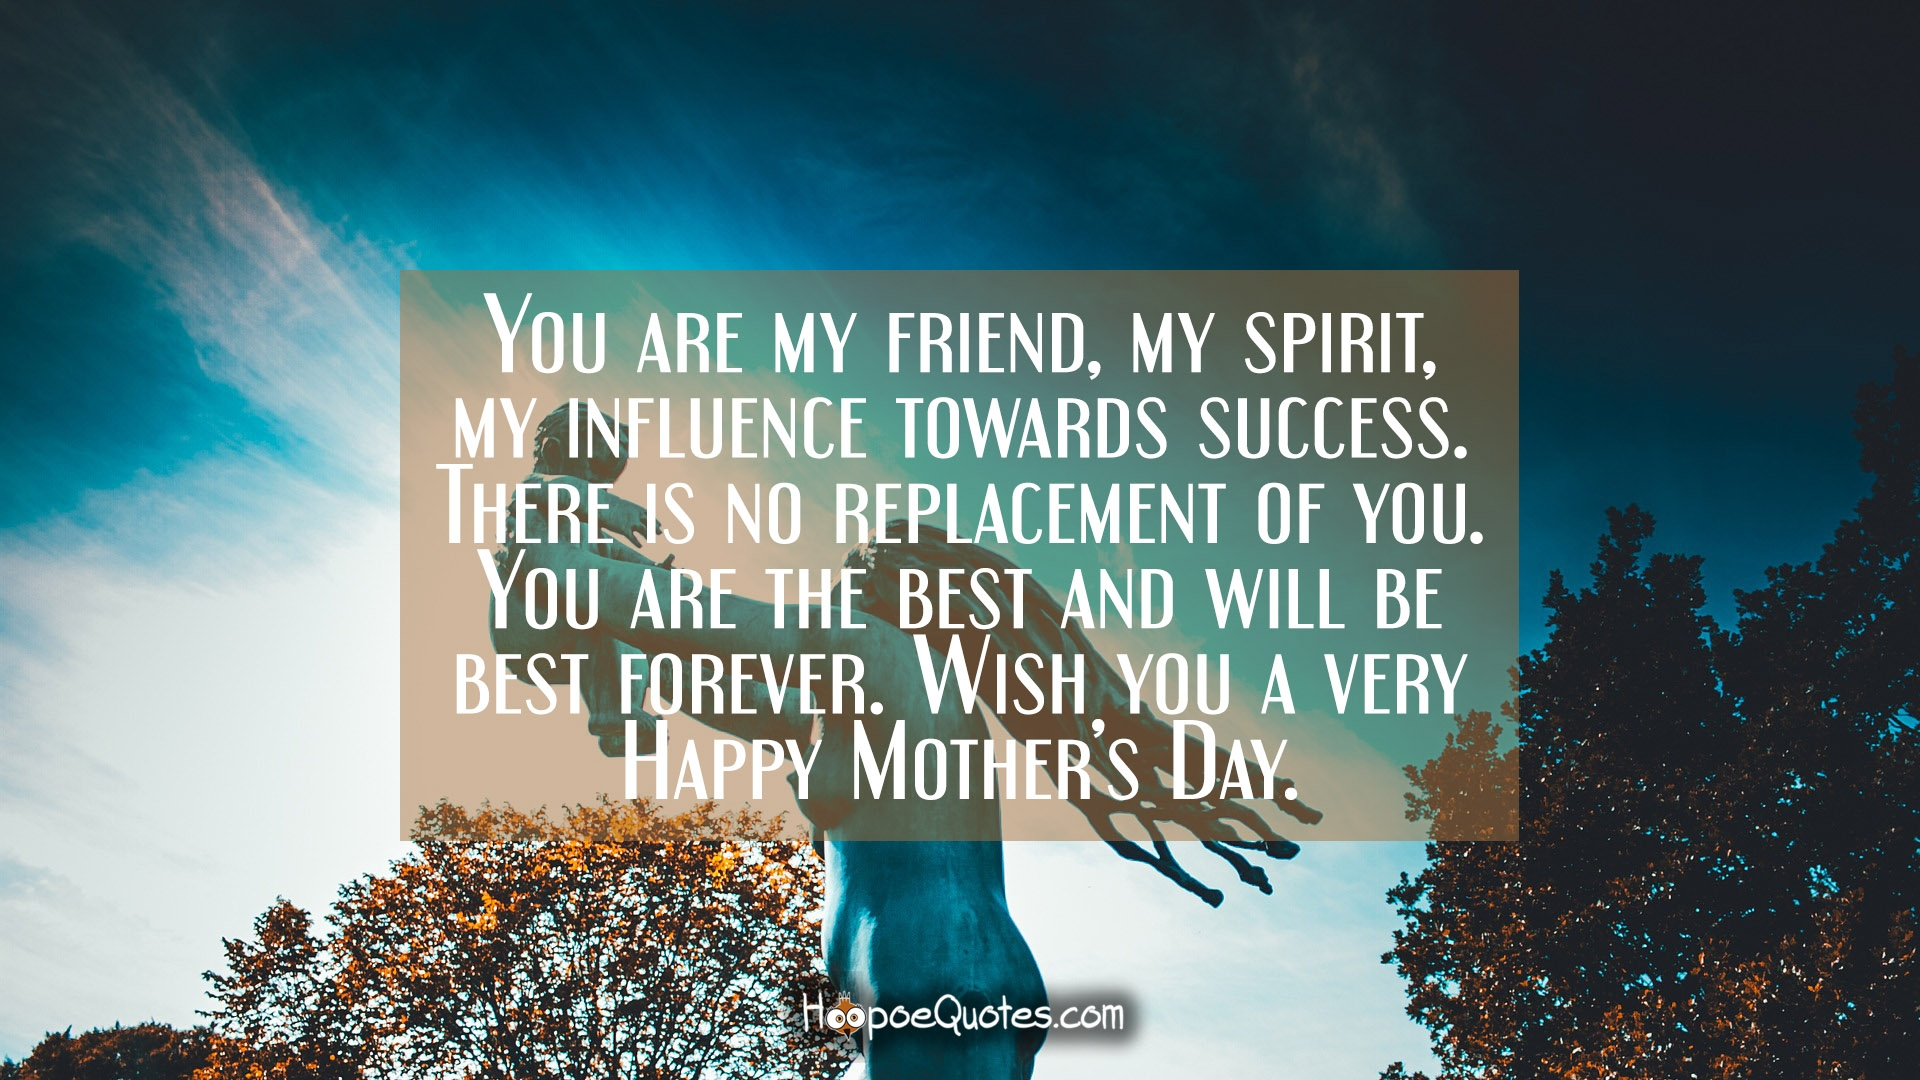 You Are My Friend My Spirit My Influence Towards Success There Is